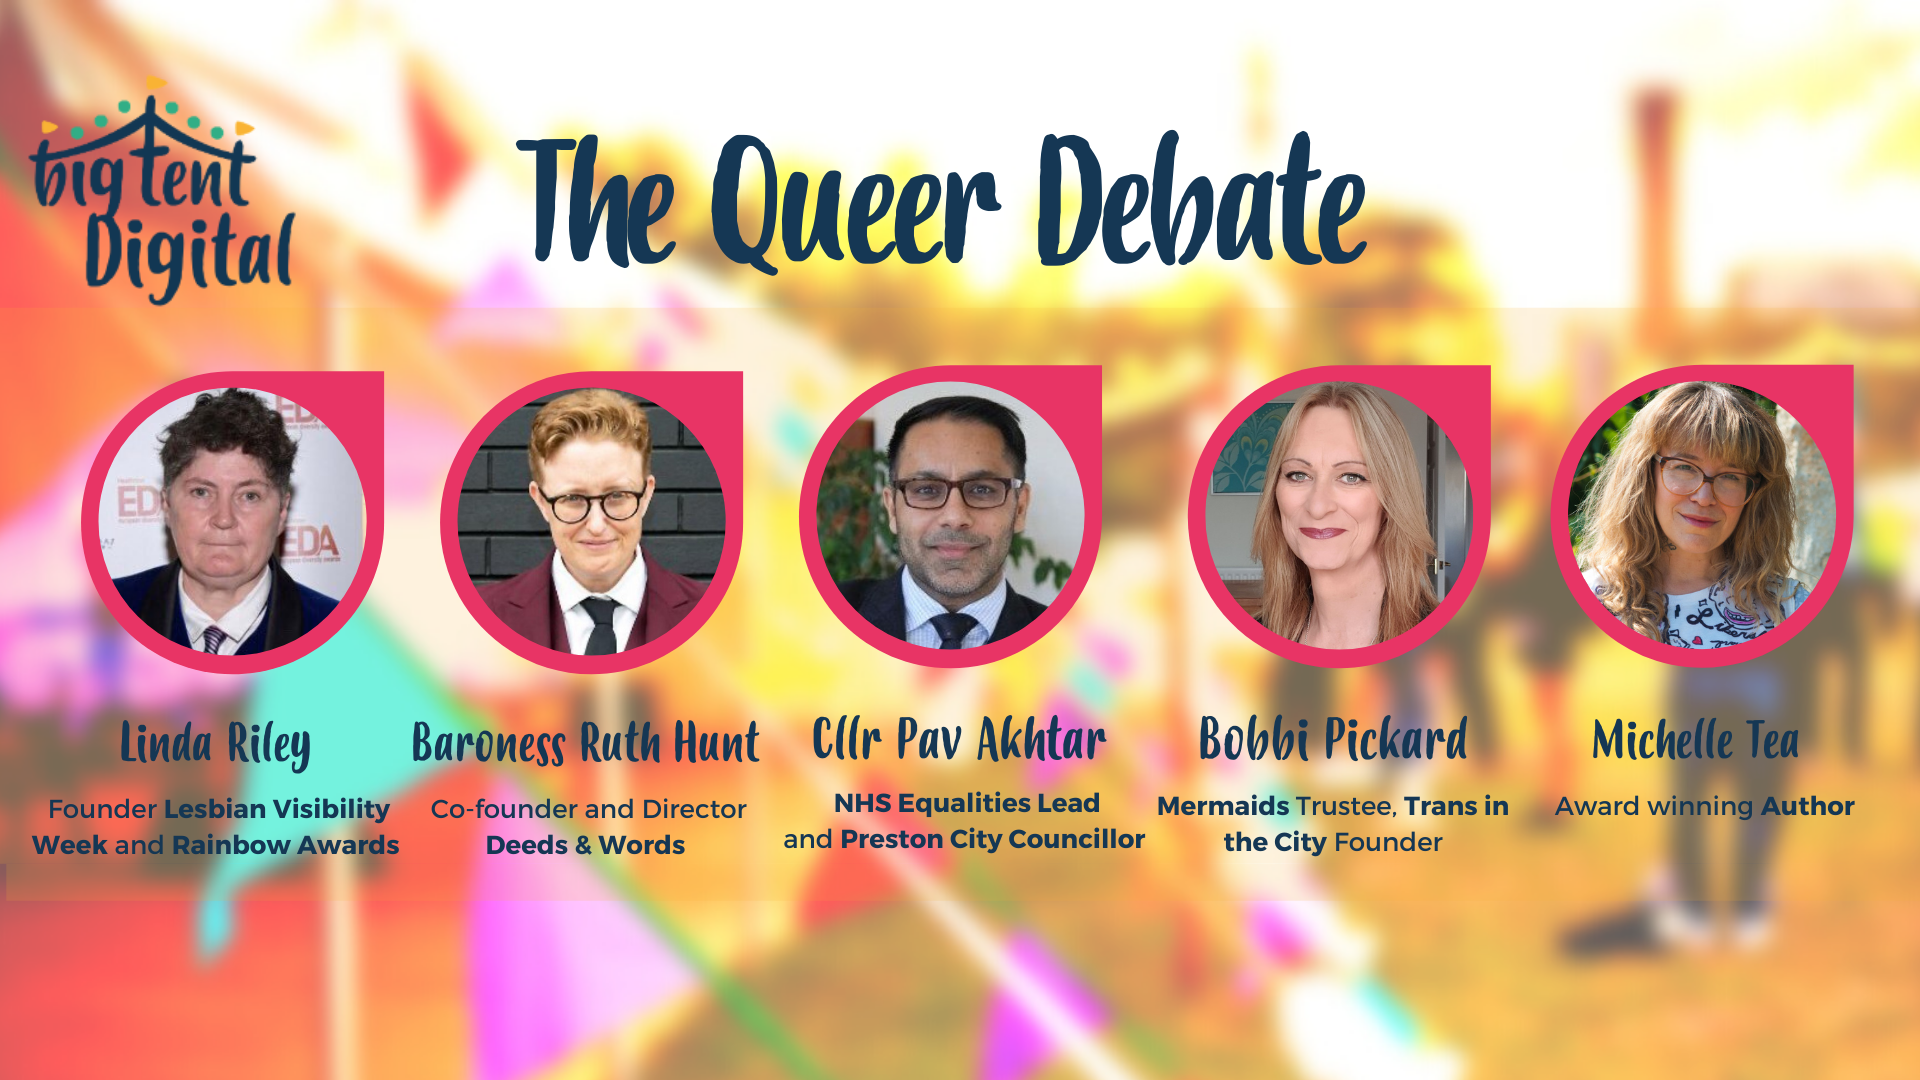 The Queer Debate: what are the biggest challenges for the LGBTQ+ community in 2020?